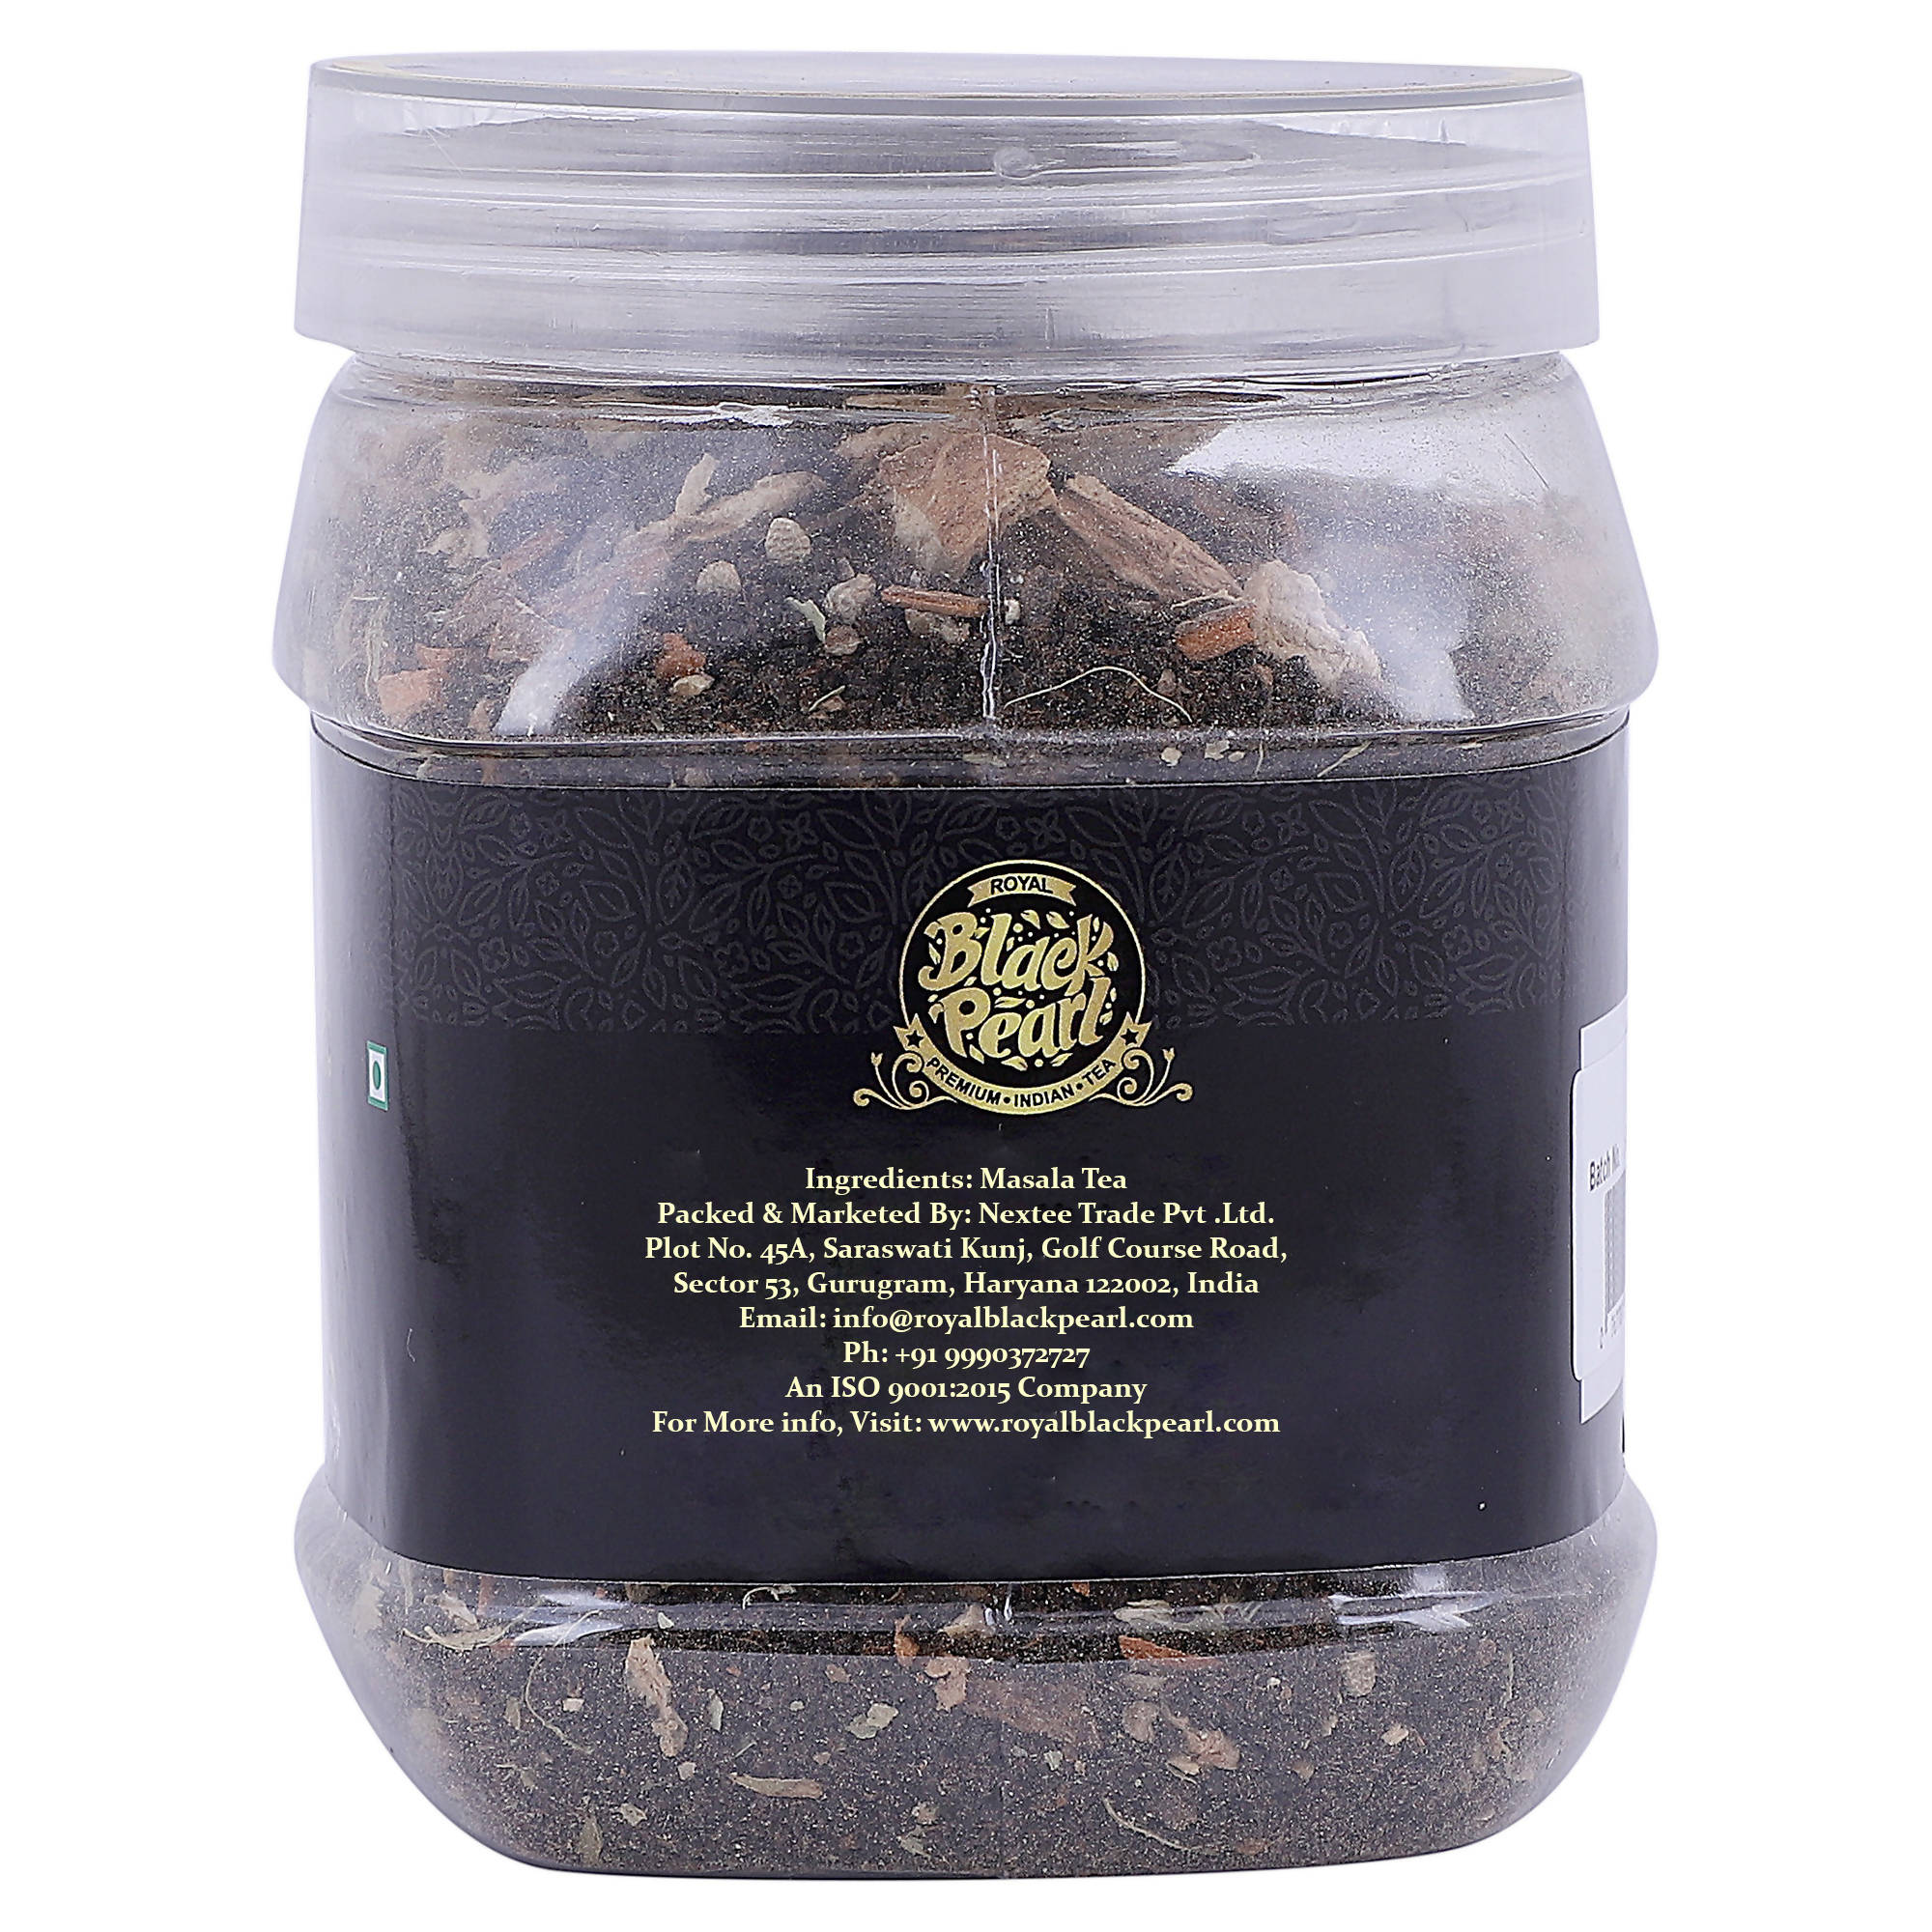 Royal Black Pearl Masala Chai Herbs, Spices Masala Tea Plastic Bottle (250 g)